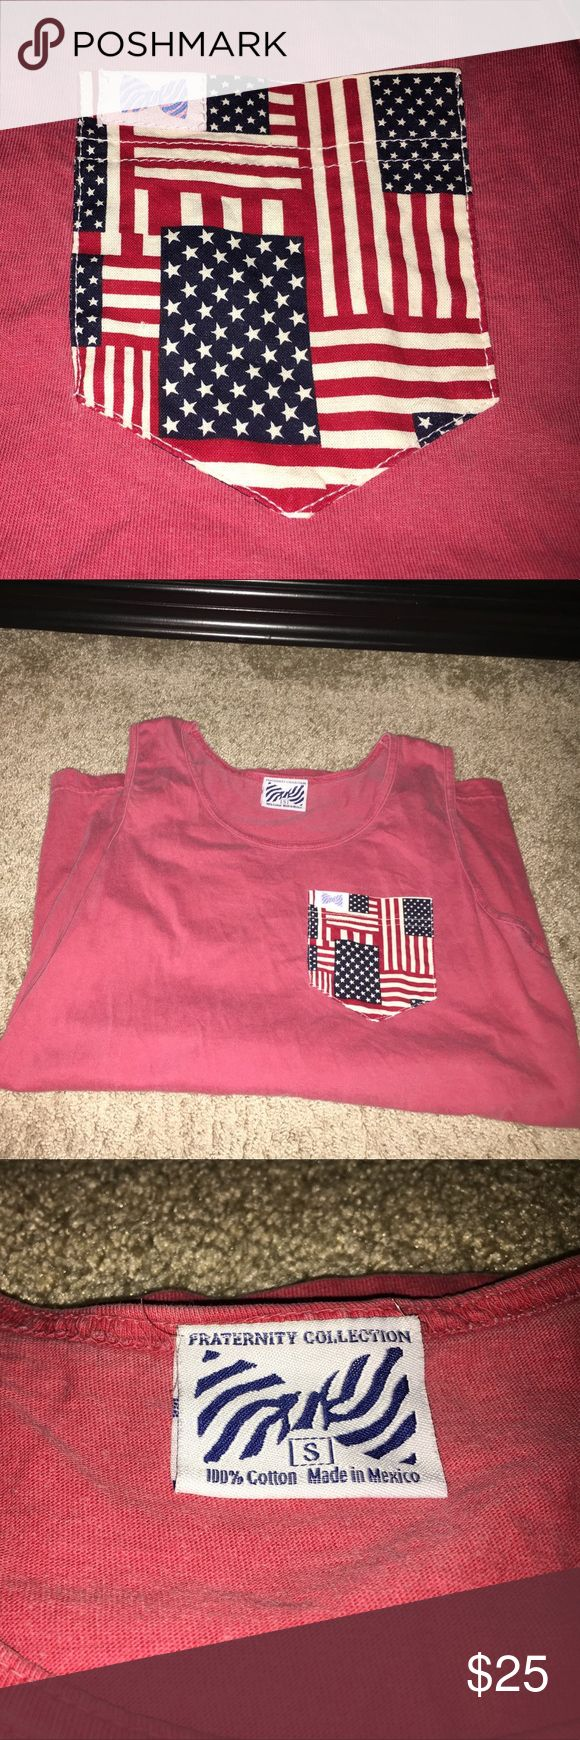 Fraternity collection USA red white & blue tank Special edition USA, American flag front pocket // size small no stains, rips, or signs of wear Simply Southern Tops Tank Tops